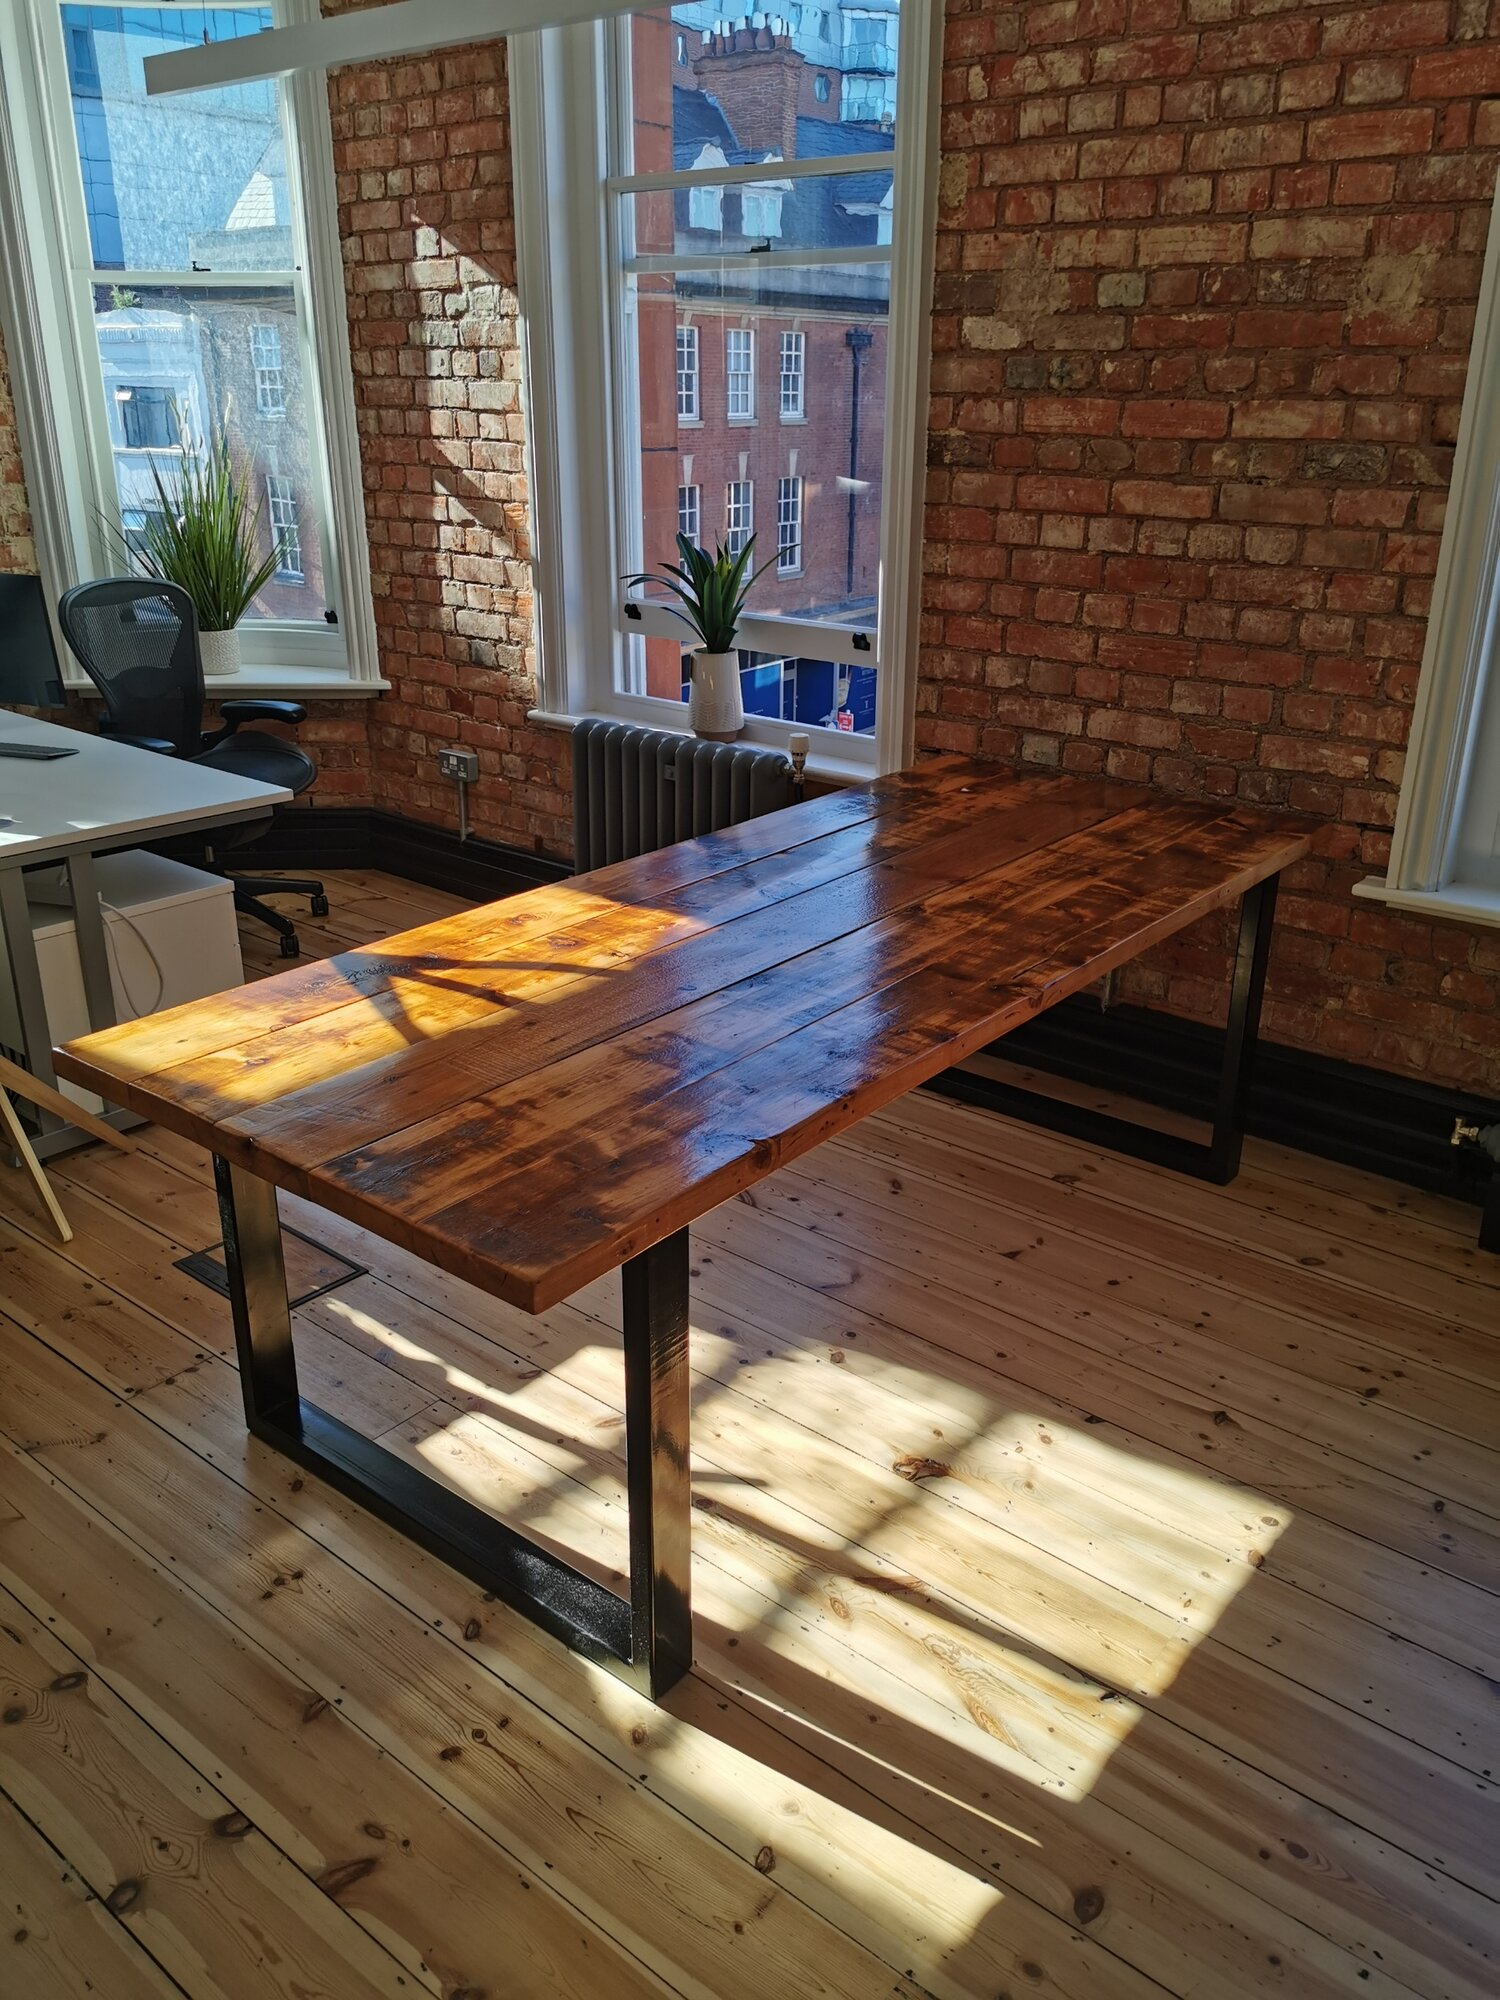 Remodify Reclaimed Wood Furniture Bespoke Solid Wood Dining Tables Coffee Tables And Dining Room Furniture